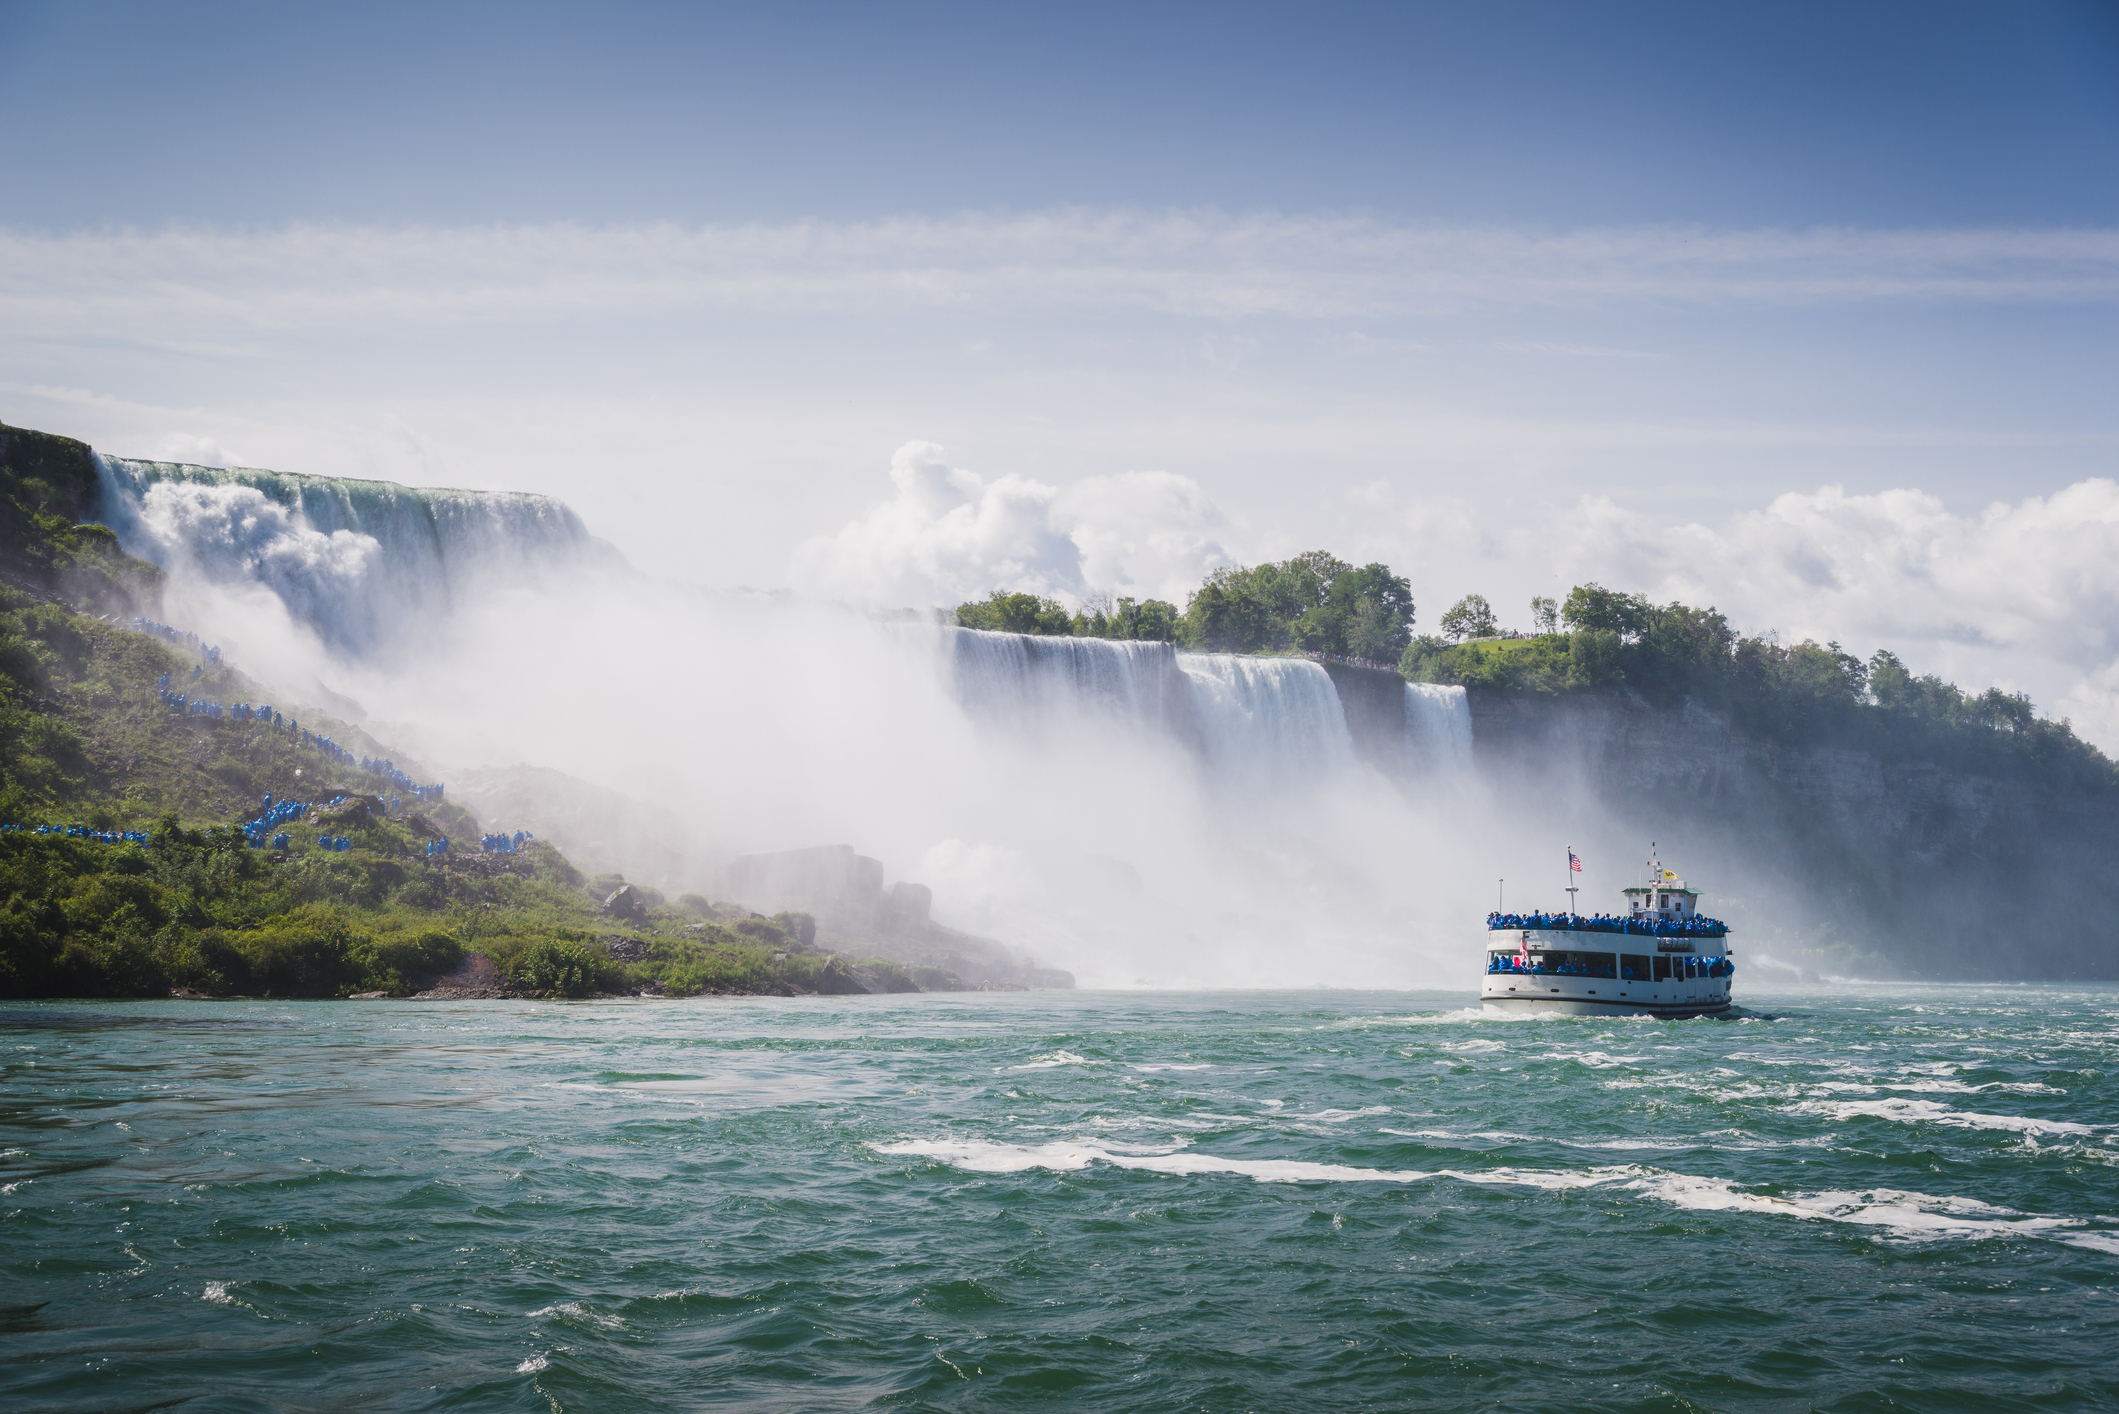 Perfect Family Vacation Spot — a tour boat chugs to the foot of niagara falls.